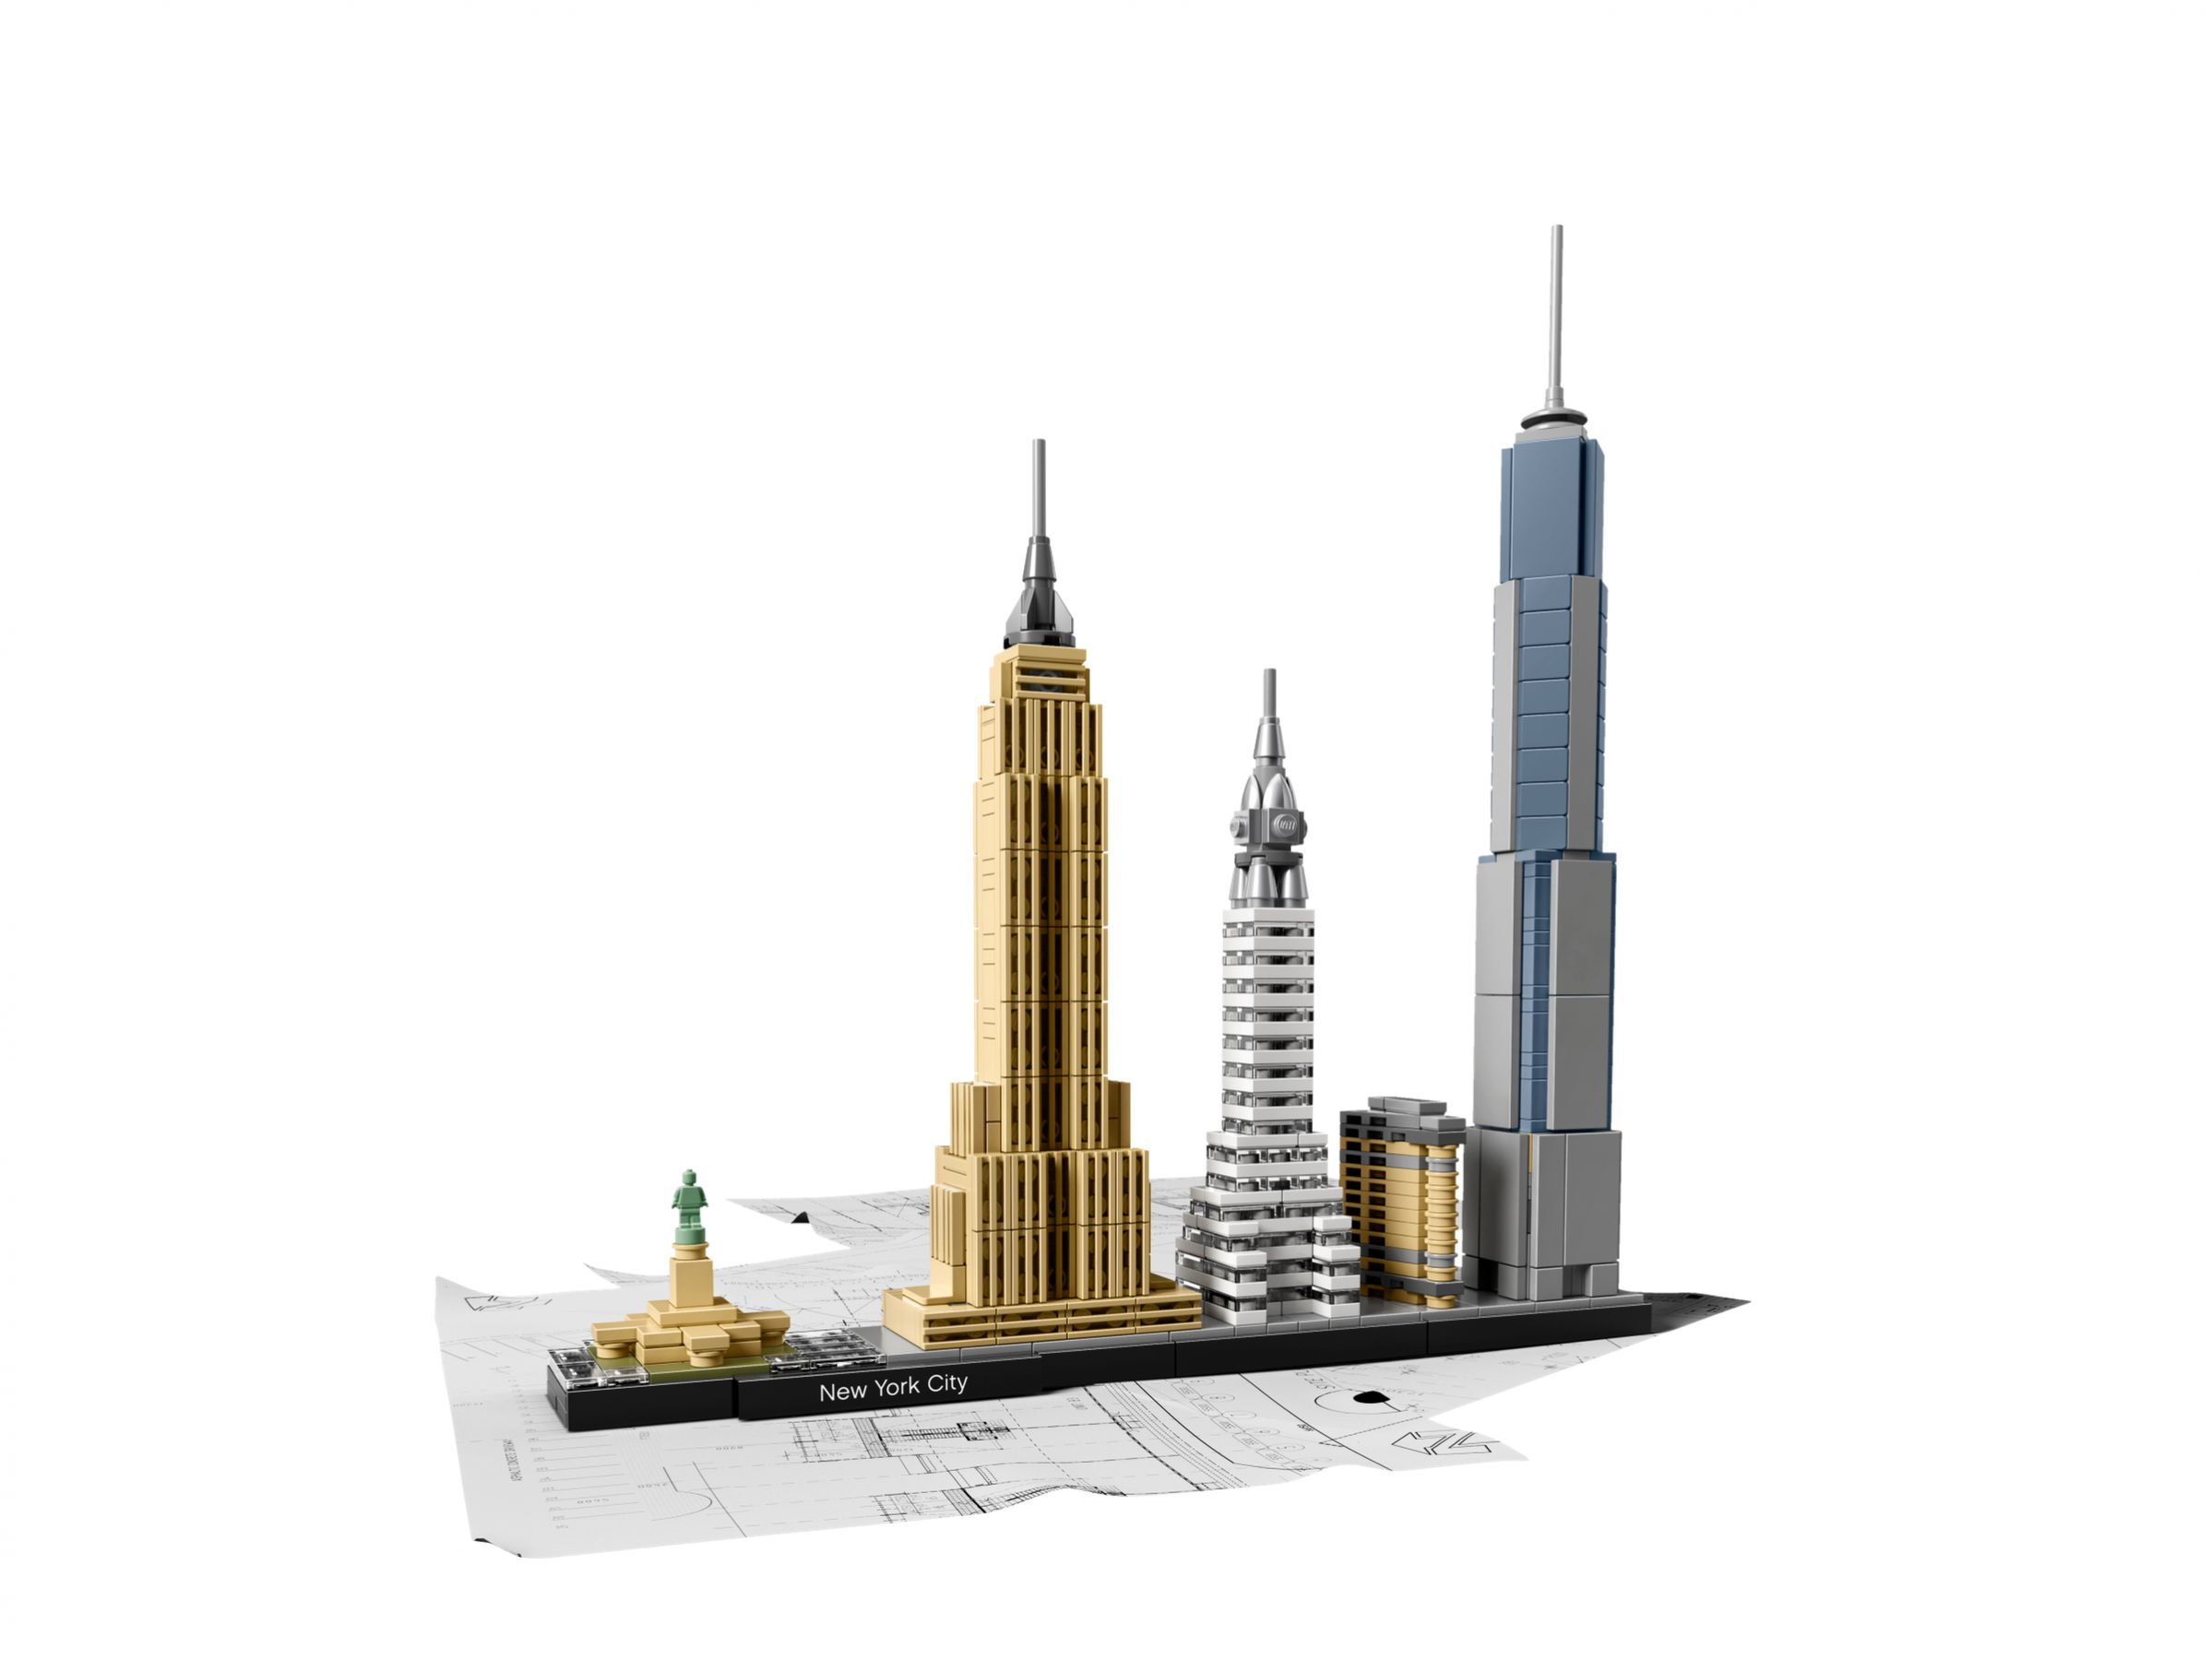 LEGO Architecture 21028 New York City LEGO_21028_alt2.jpg